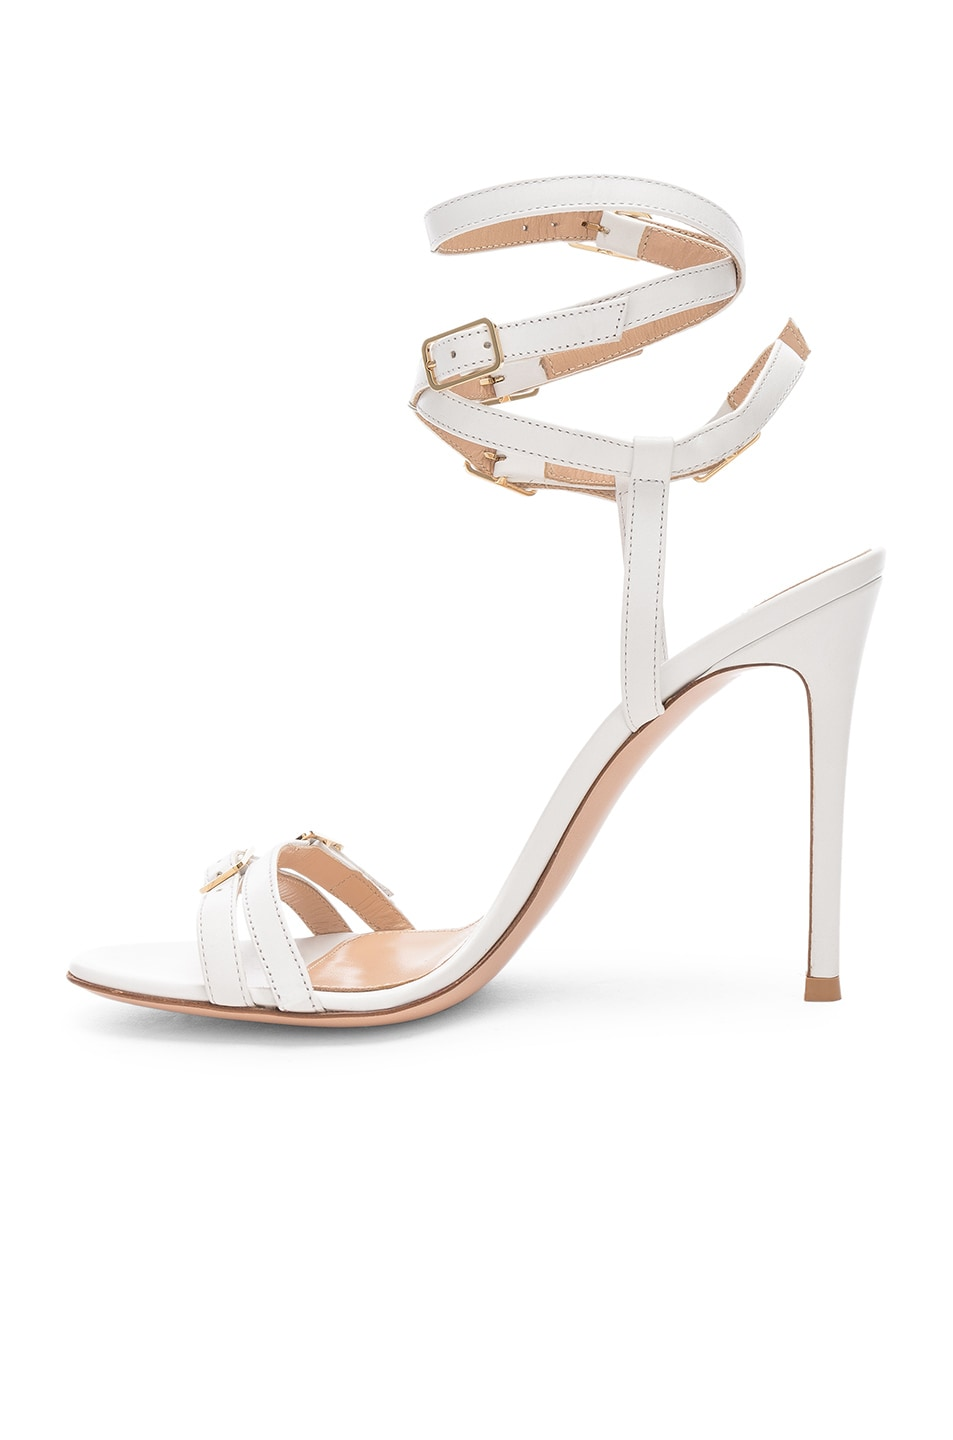 Image 5 of Gianvito Rossi Cassandra Buckle Strappy Heel in White